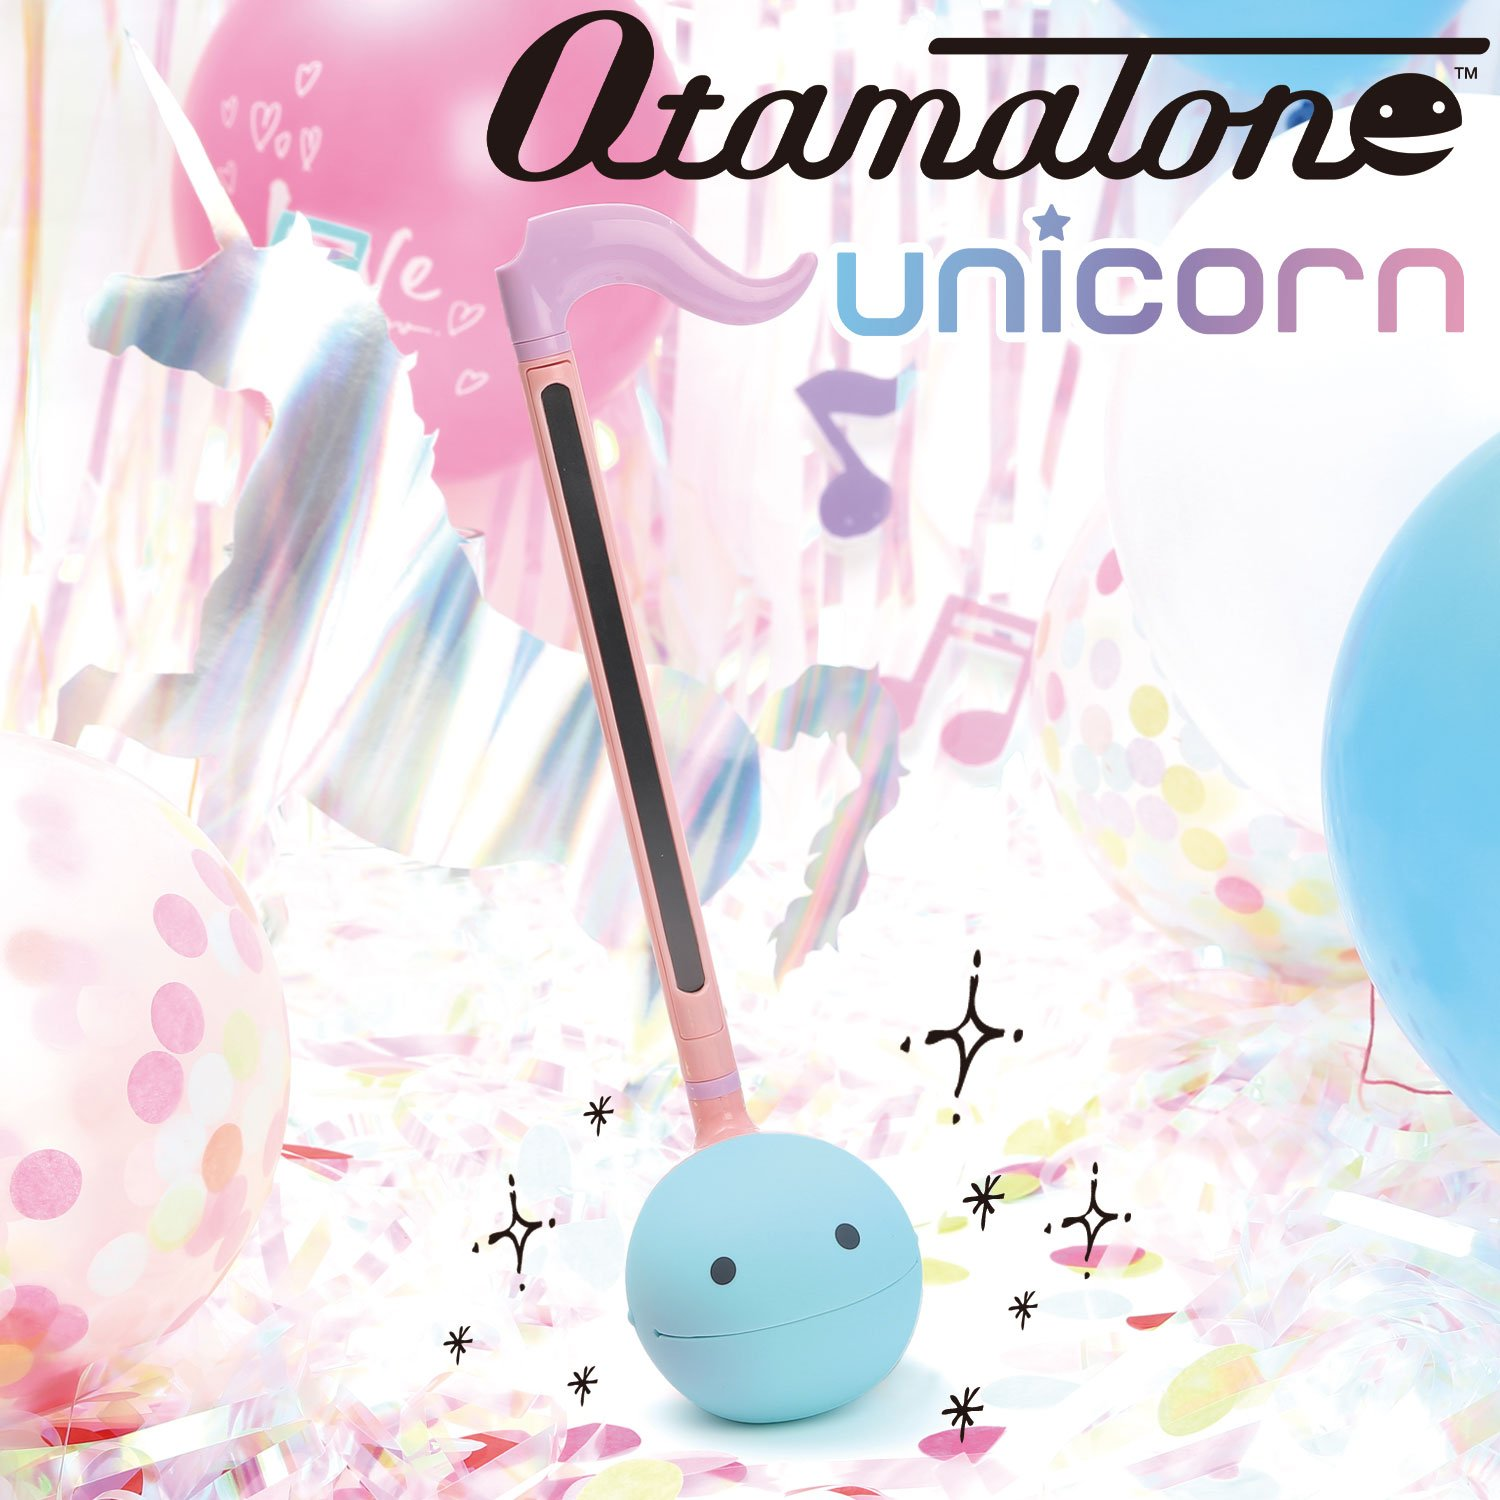 Otamatone [Special Color Edition] ''Unicorn'' [English Manual] Japanese Electronic Musical Instrument Portable Synthesizer from Japan by Cube / Maywa Denki, Sky Blue Face with Pink Body and Purple Tail by Otamatone (Image #3)